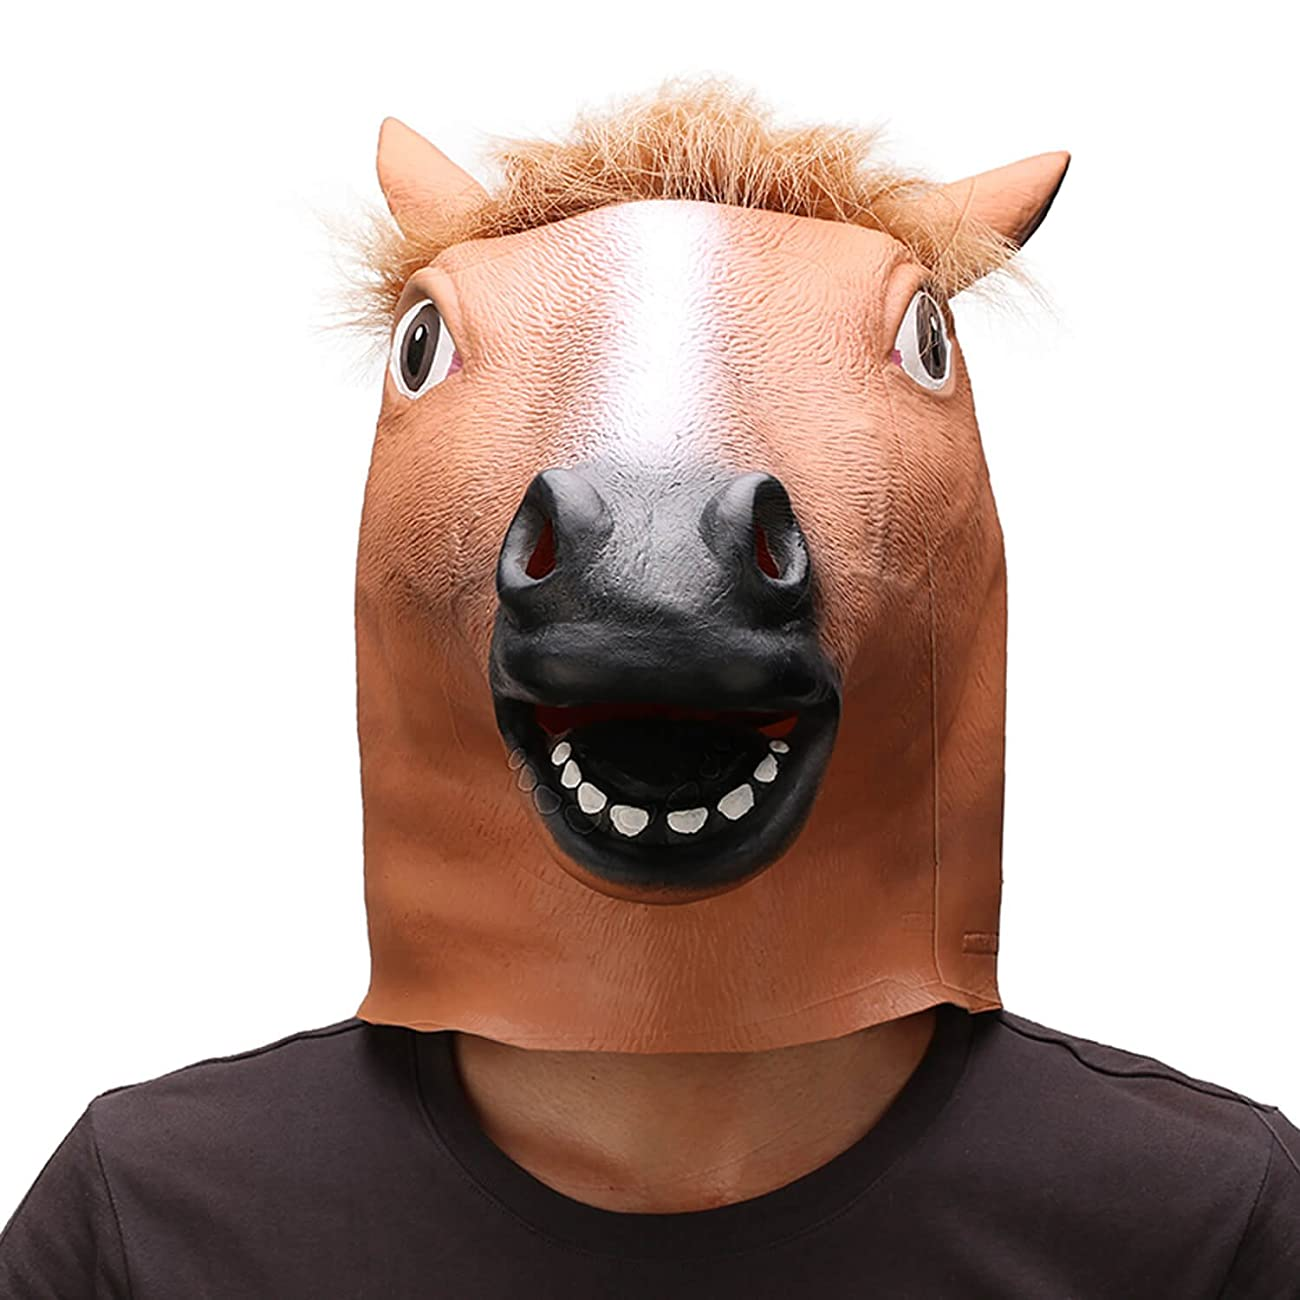 Ylovetoys Latex Horse Head Mask Halloween Costume Animal Masks 3